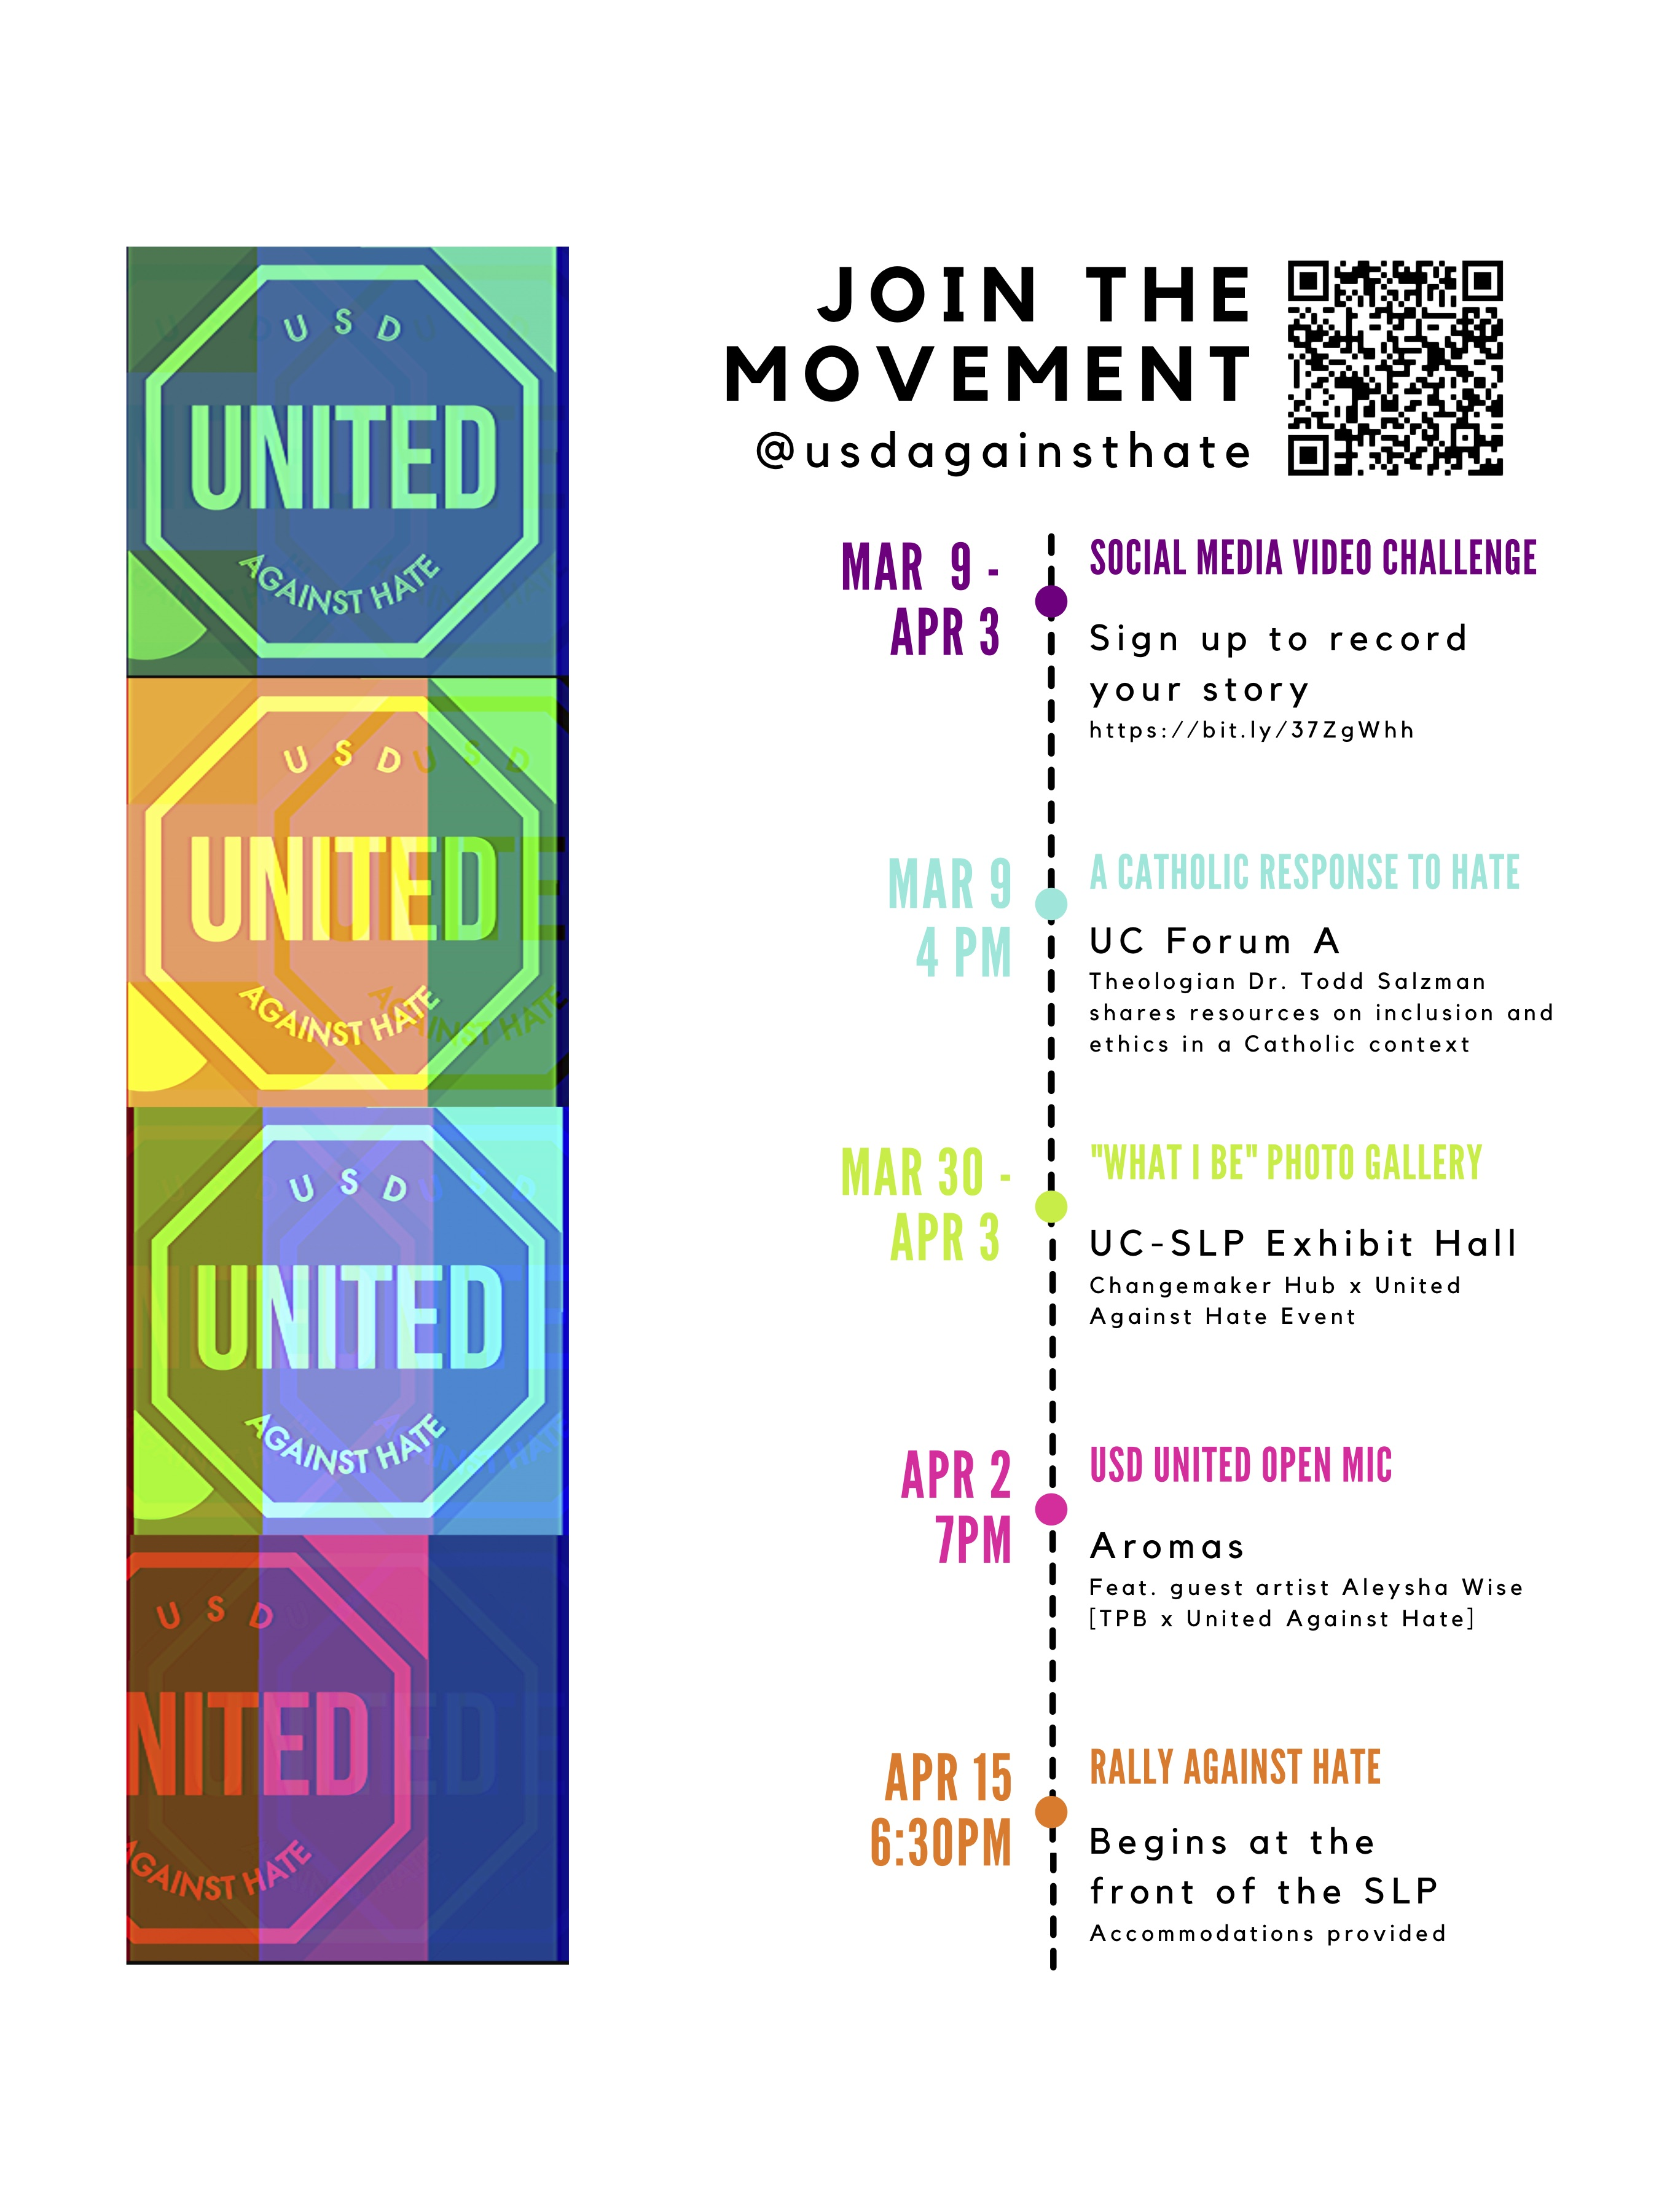 USD United Against Hate Event Timeline